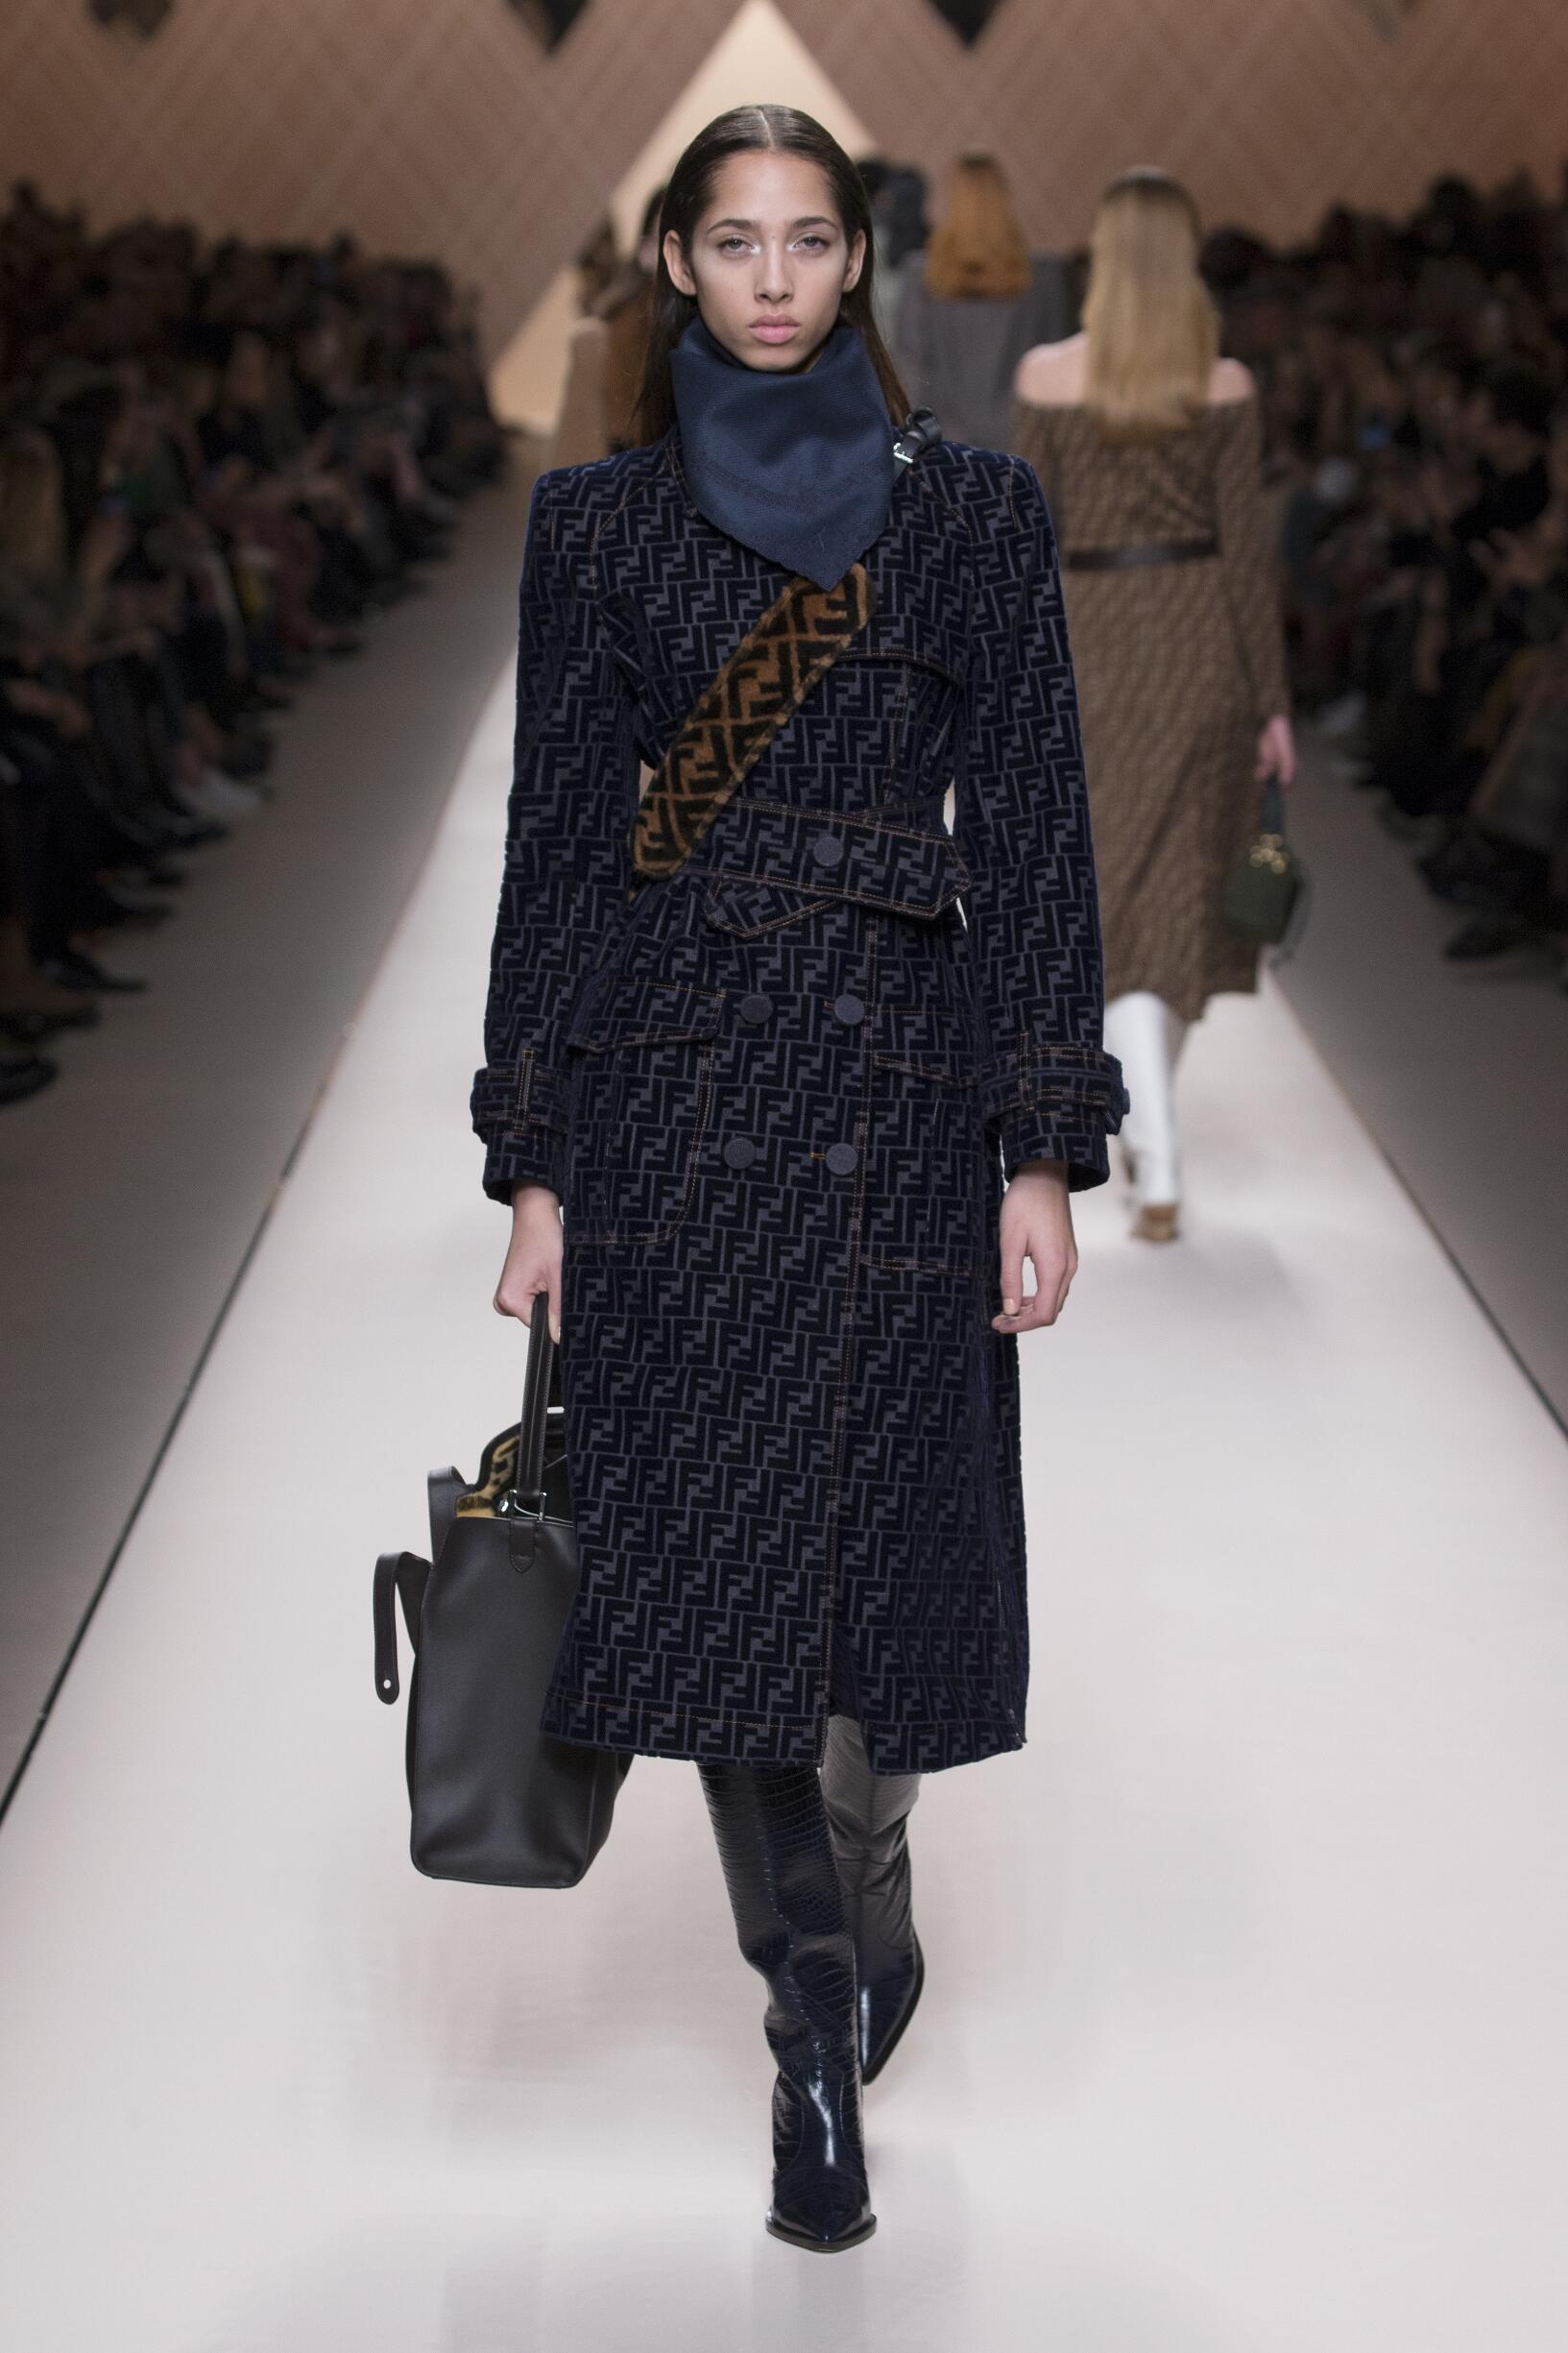 Catwalk Fendi Woman Fashion Show Winter 2018